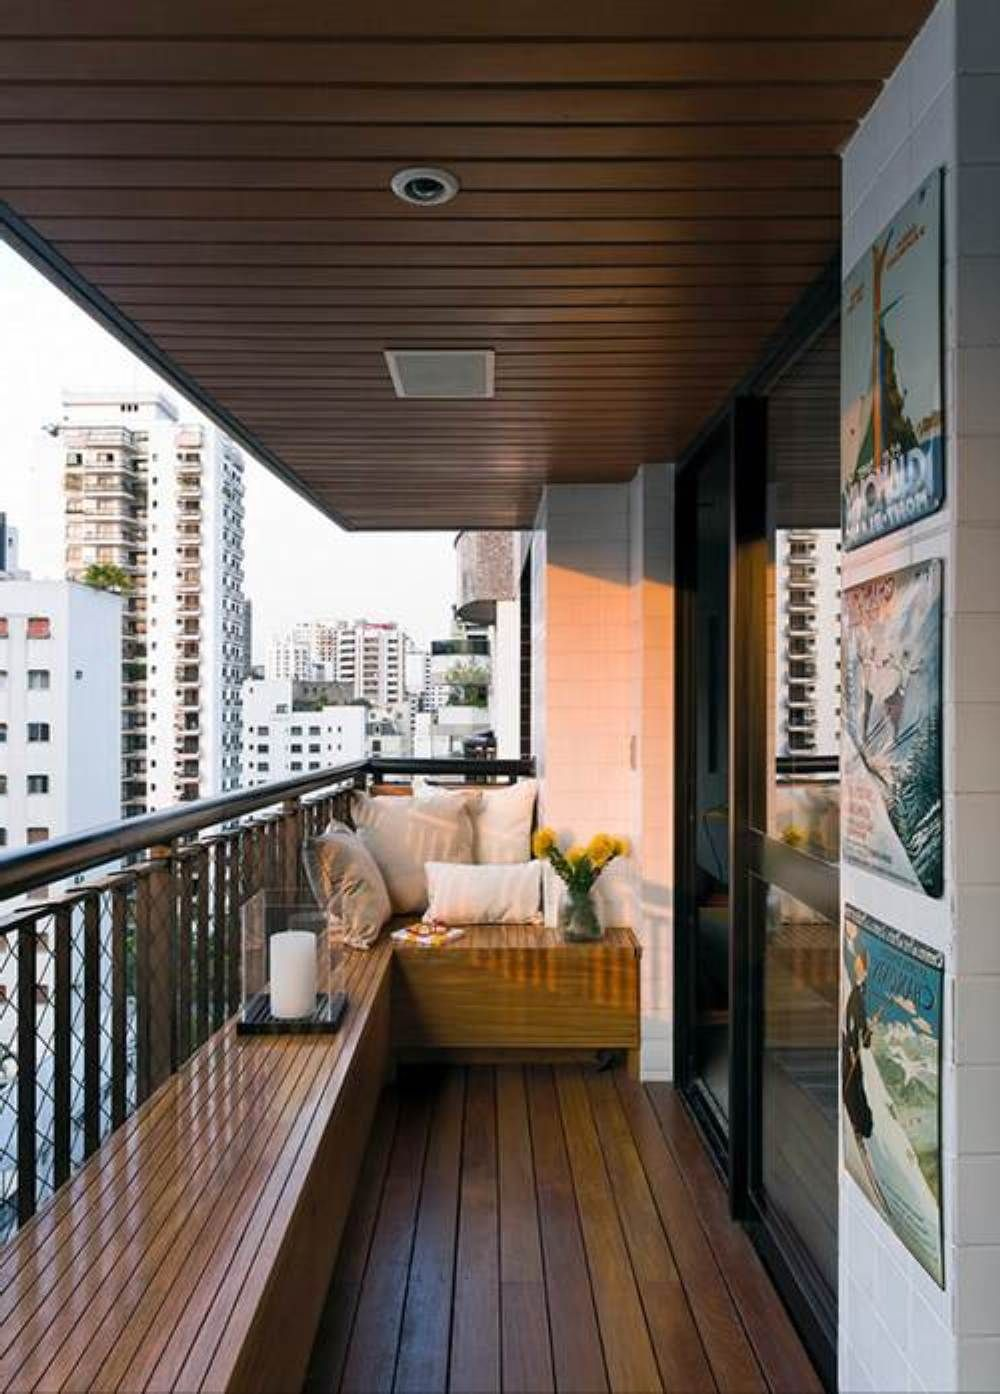 Condo balcony furniture ideas - Cool Idea To Decorating A Small Balcony